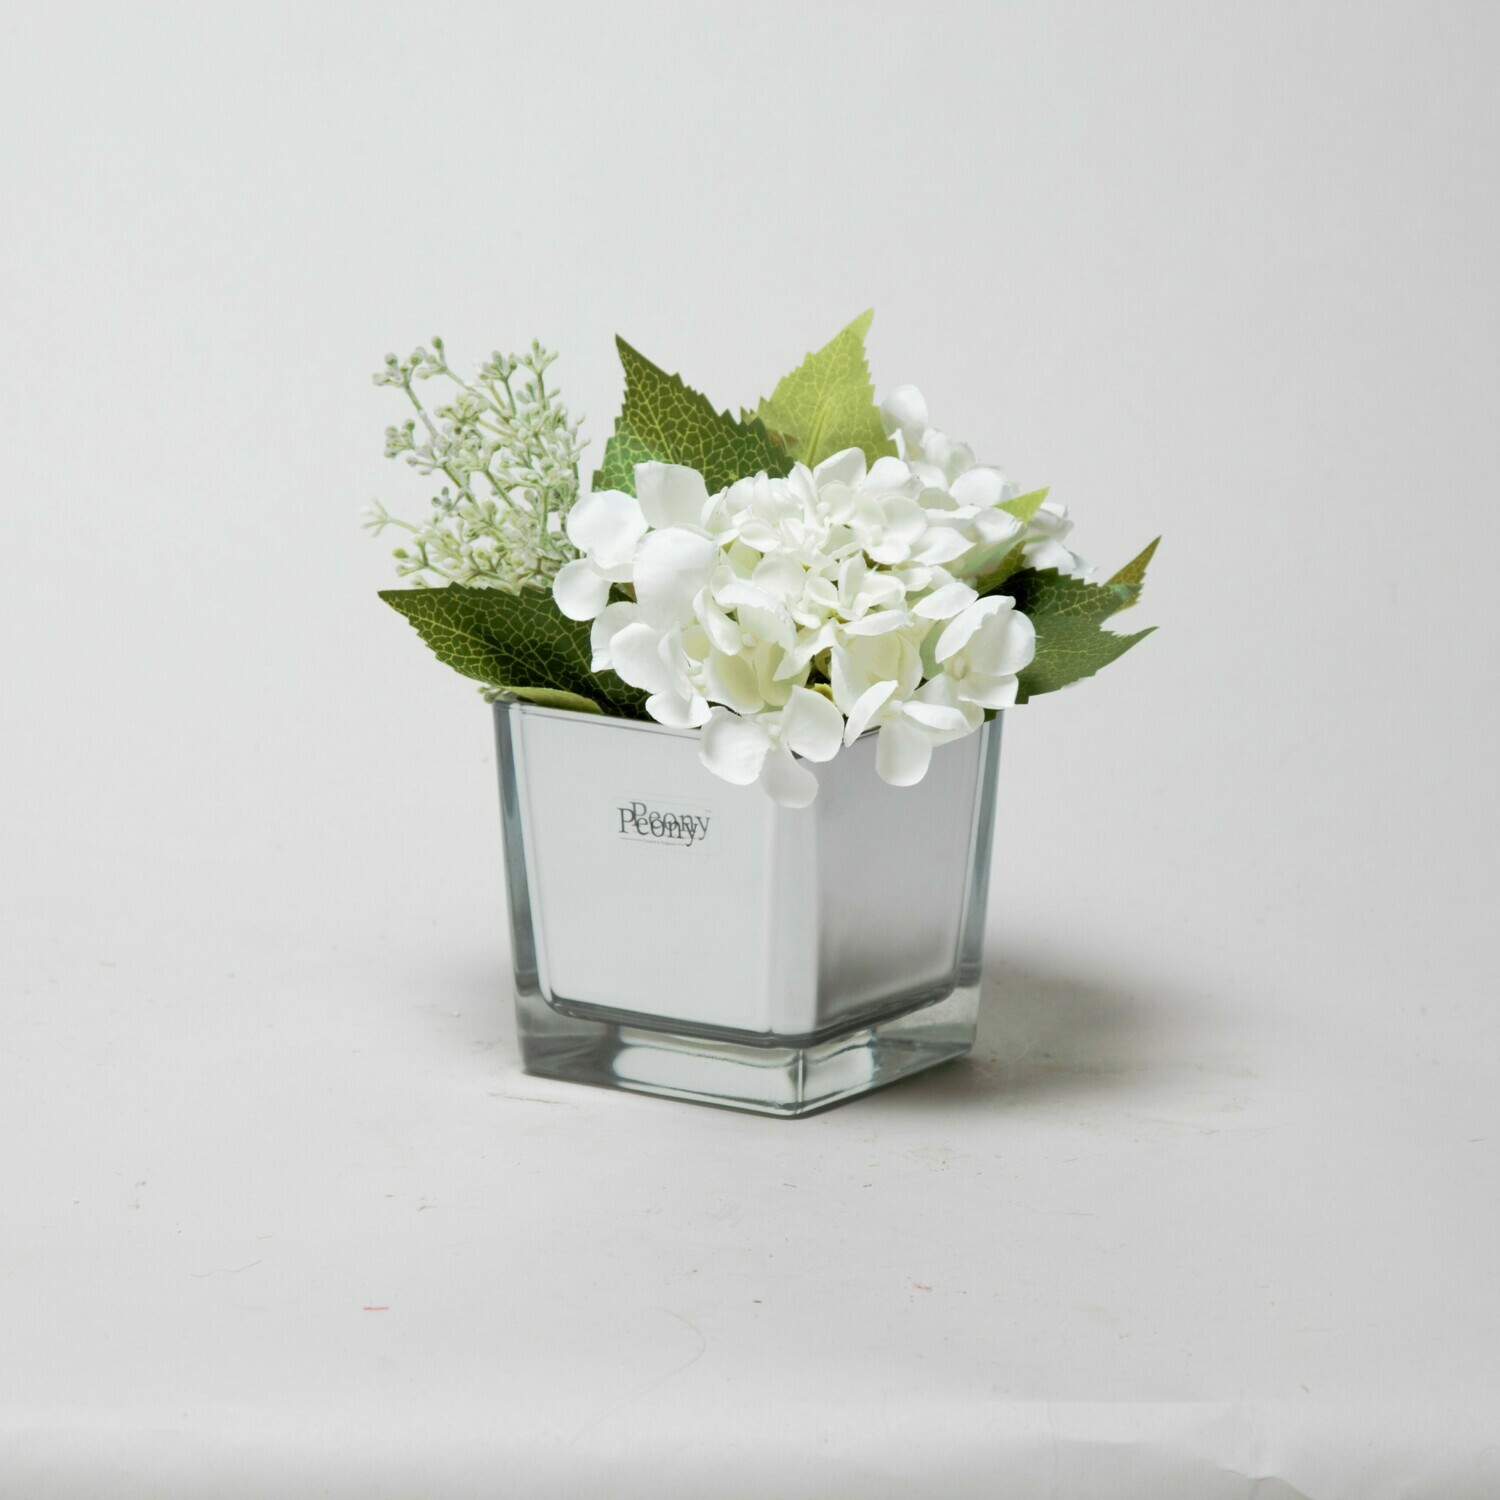 White Hydrangea and Eucalyptus seed in a mirror cube